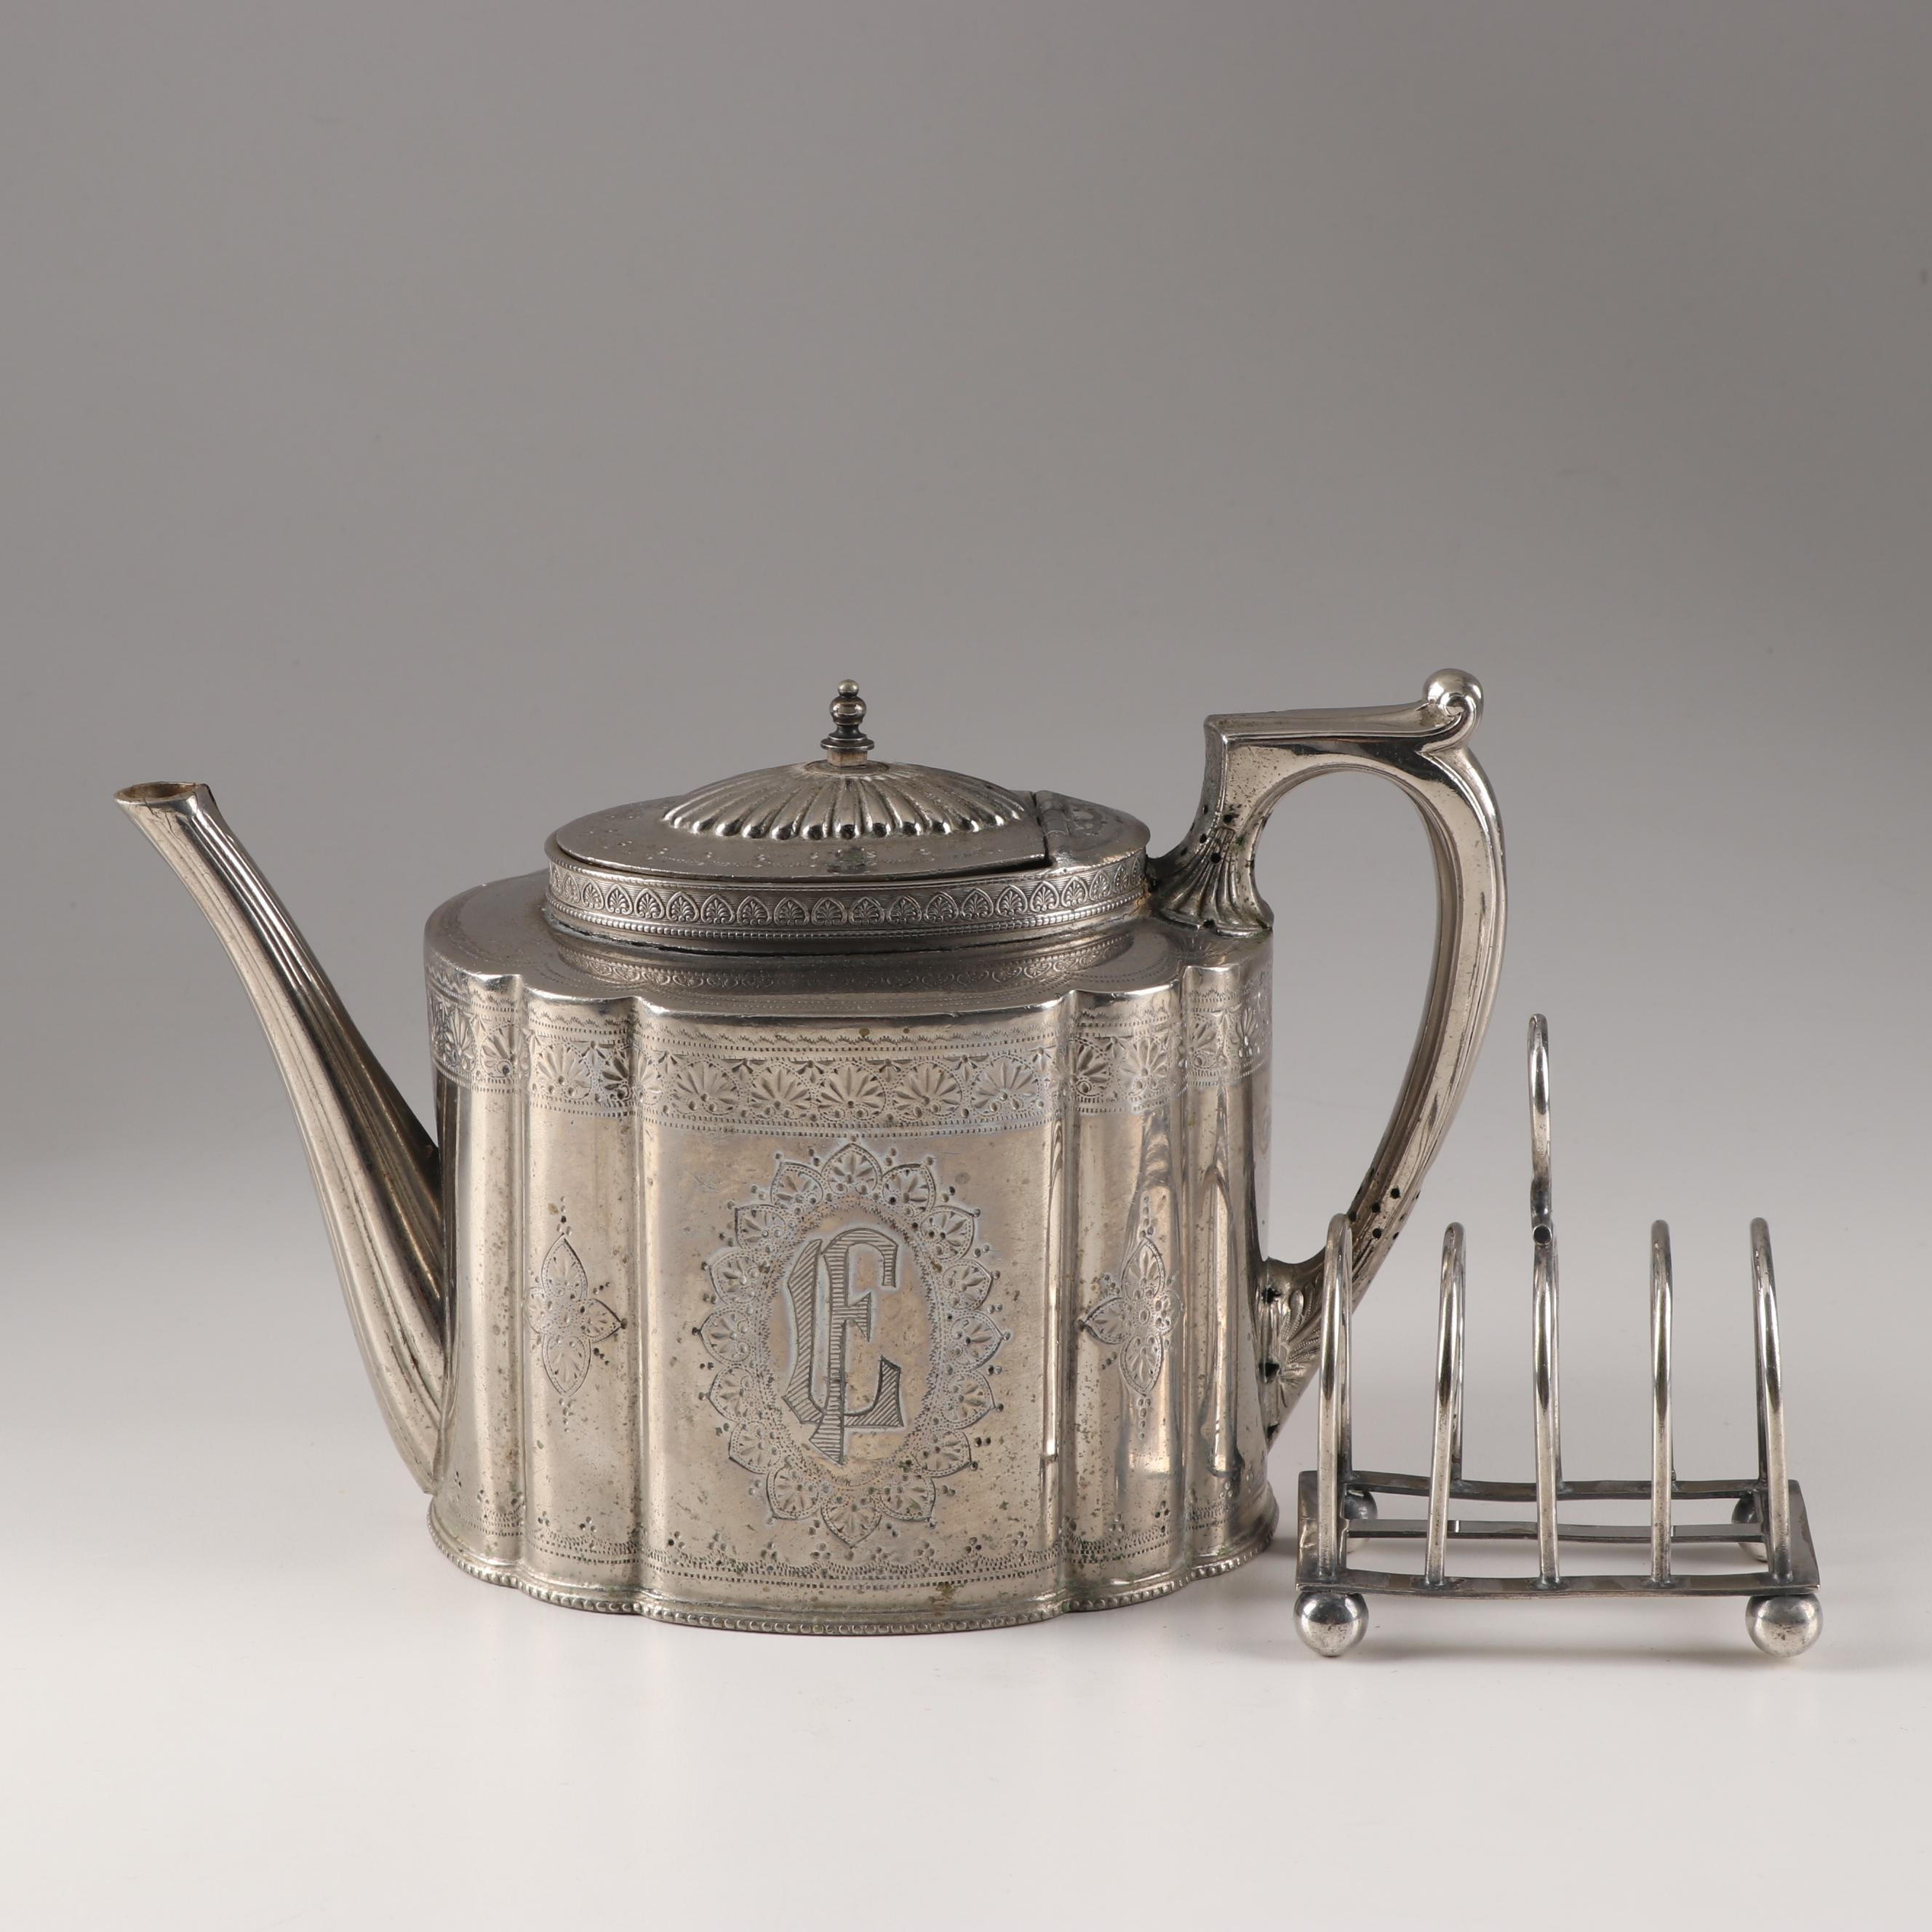 Walker & Hall Silver-Plated Teapot with Barker Brothers Toast Rack